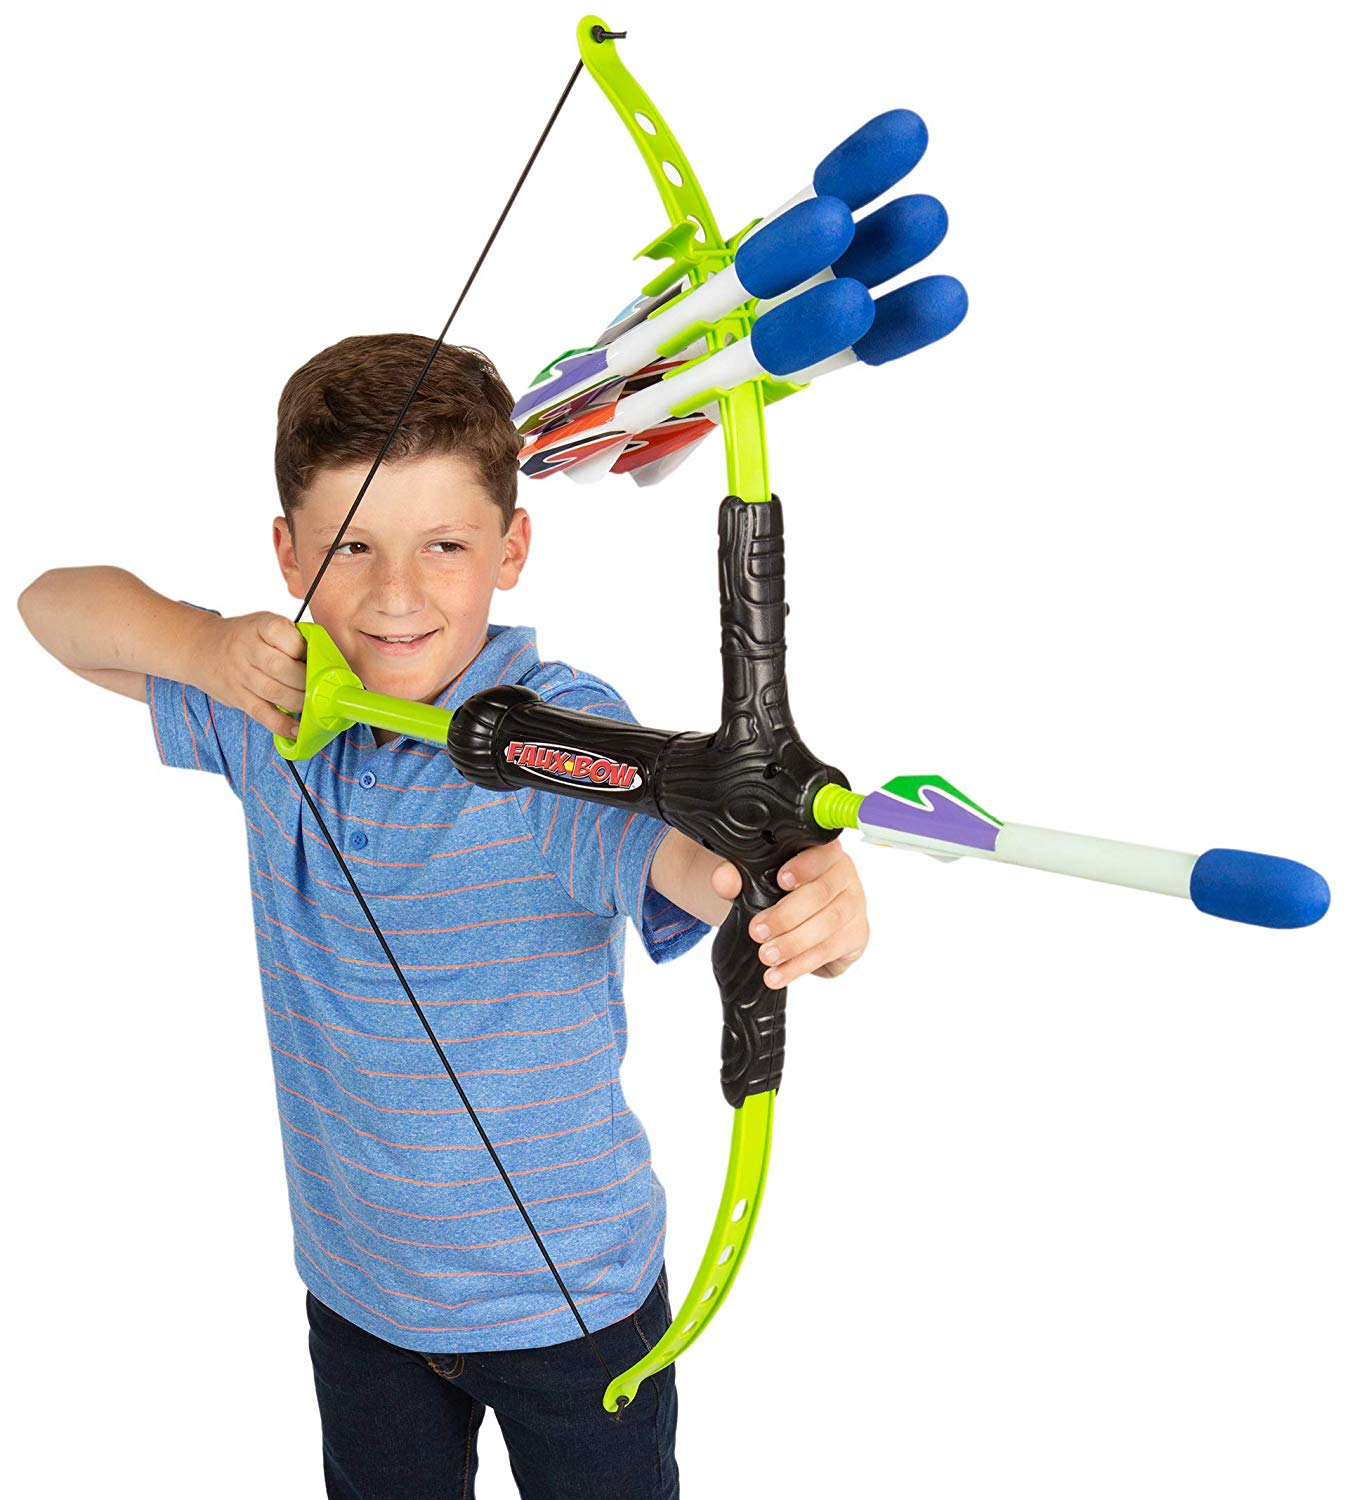 An Archery Kit